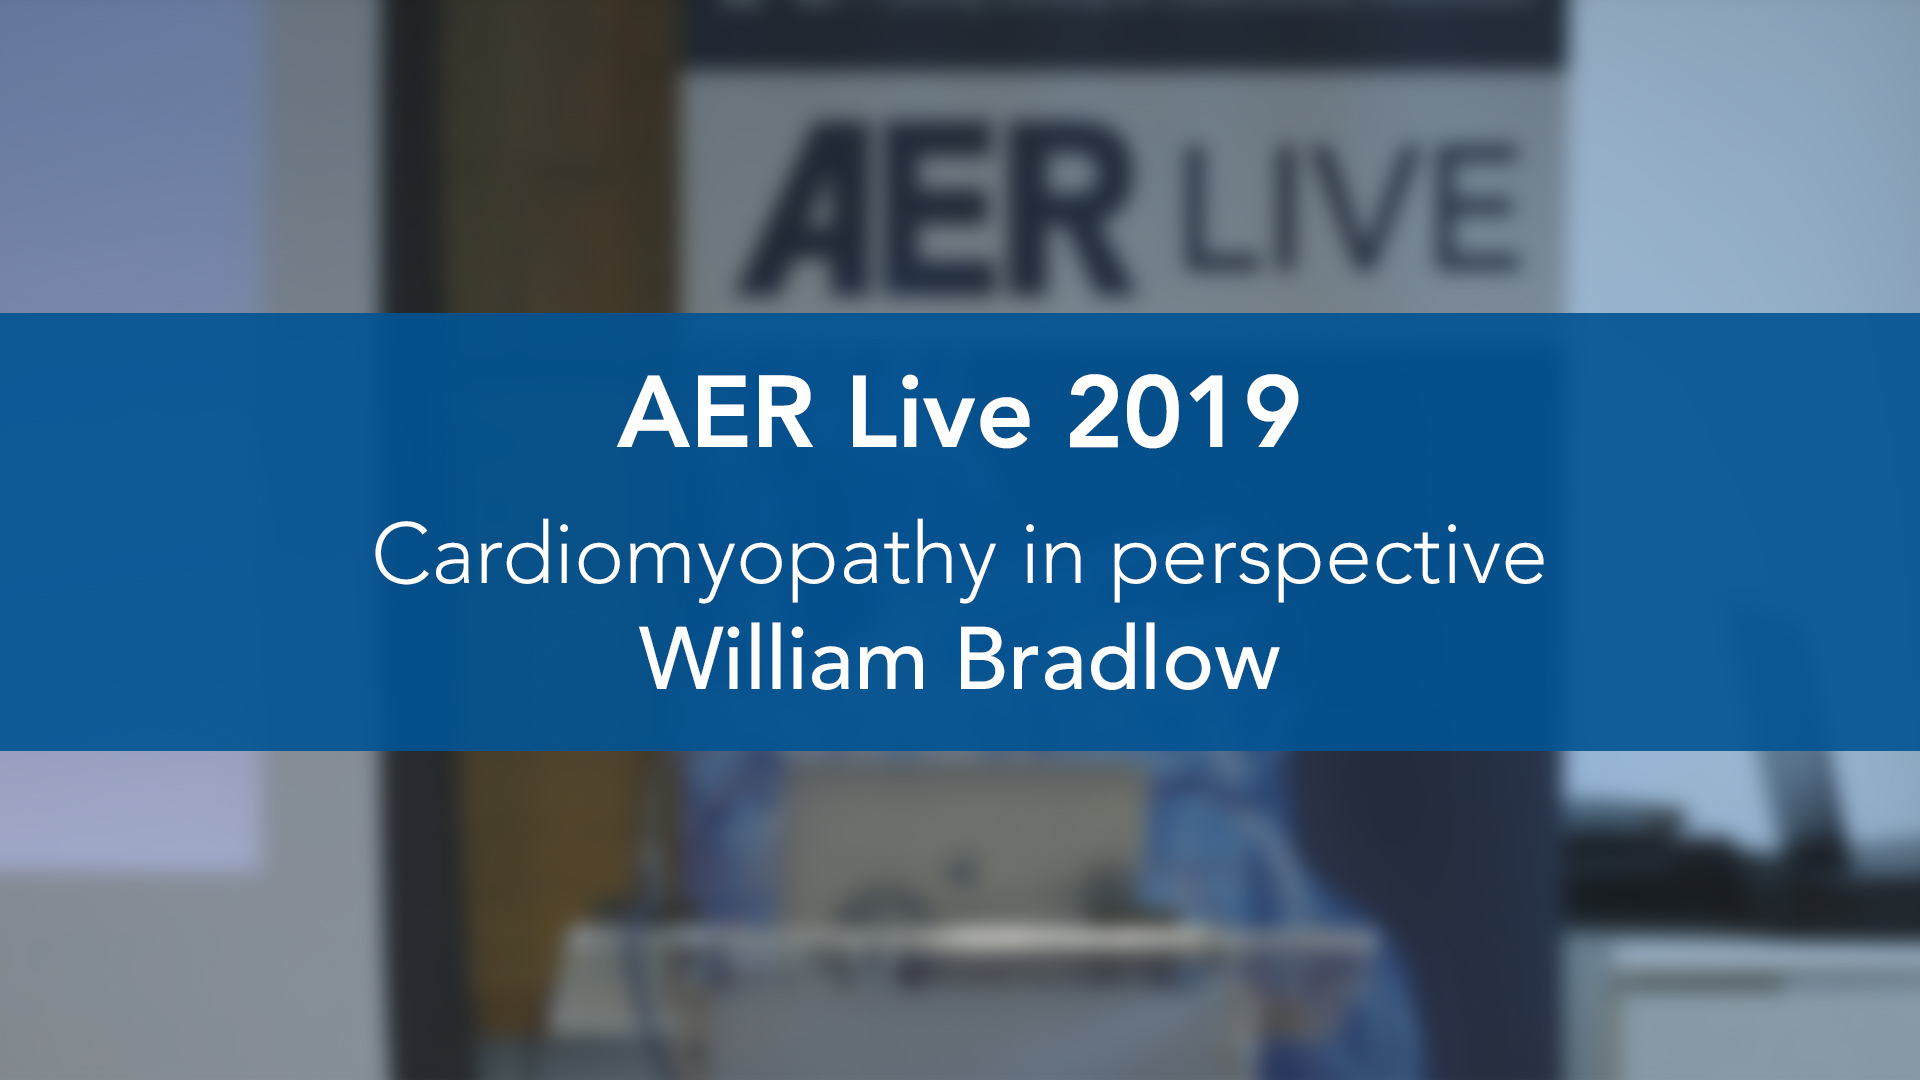 AER: Live 2019: Cardiomyopathy in perspective — William Bradlow